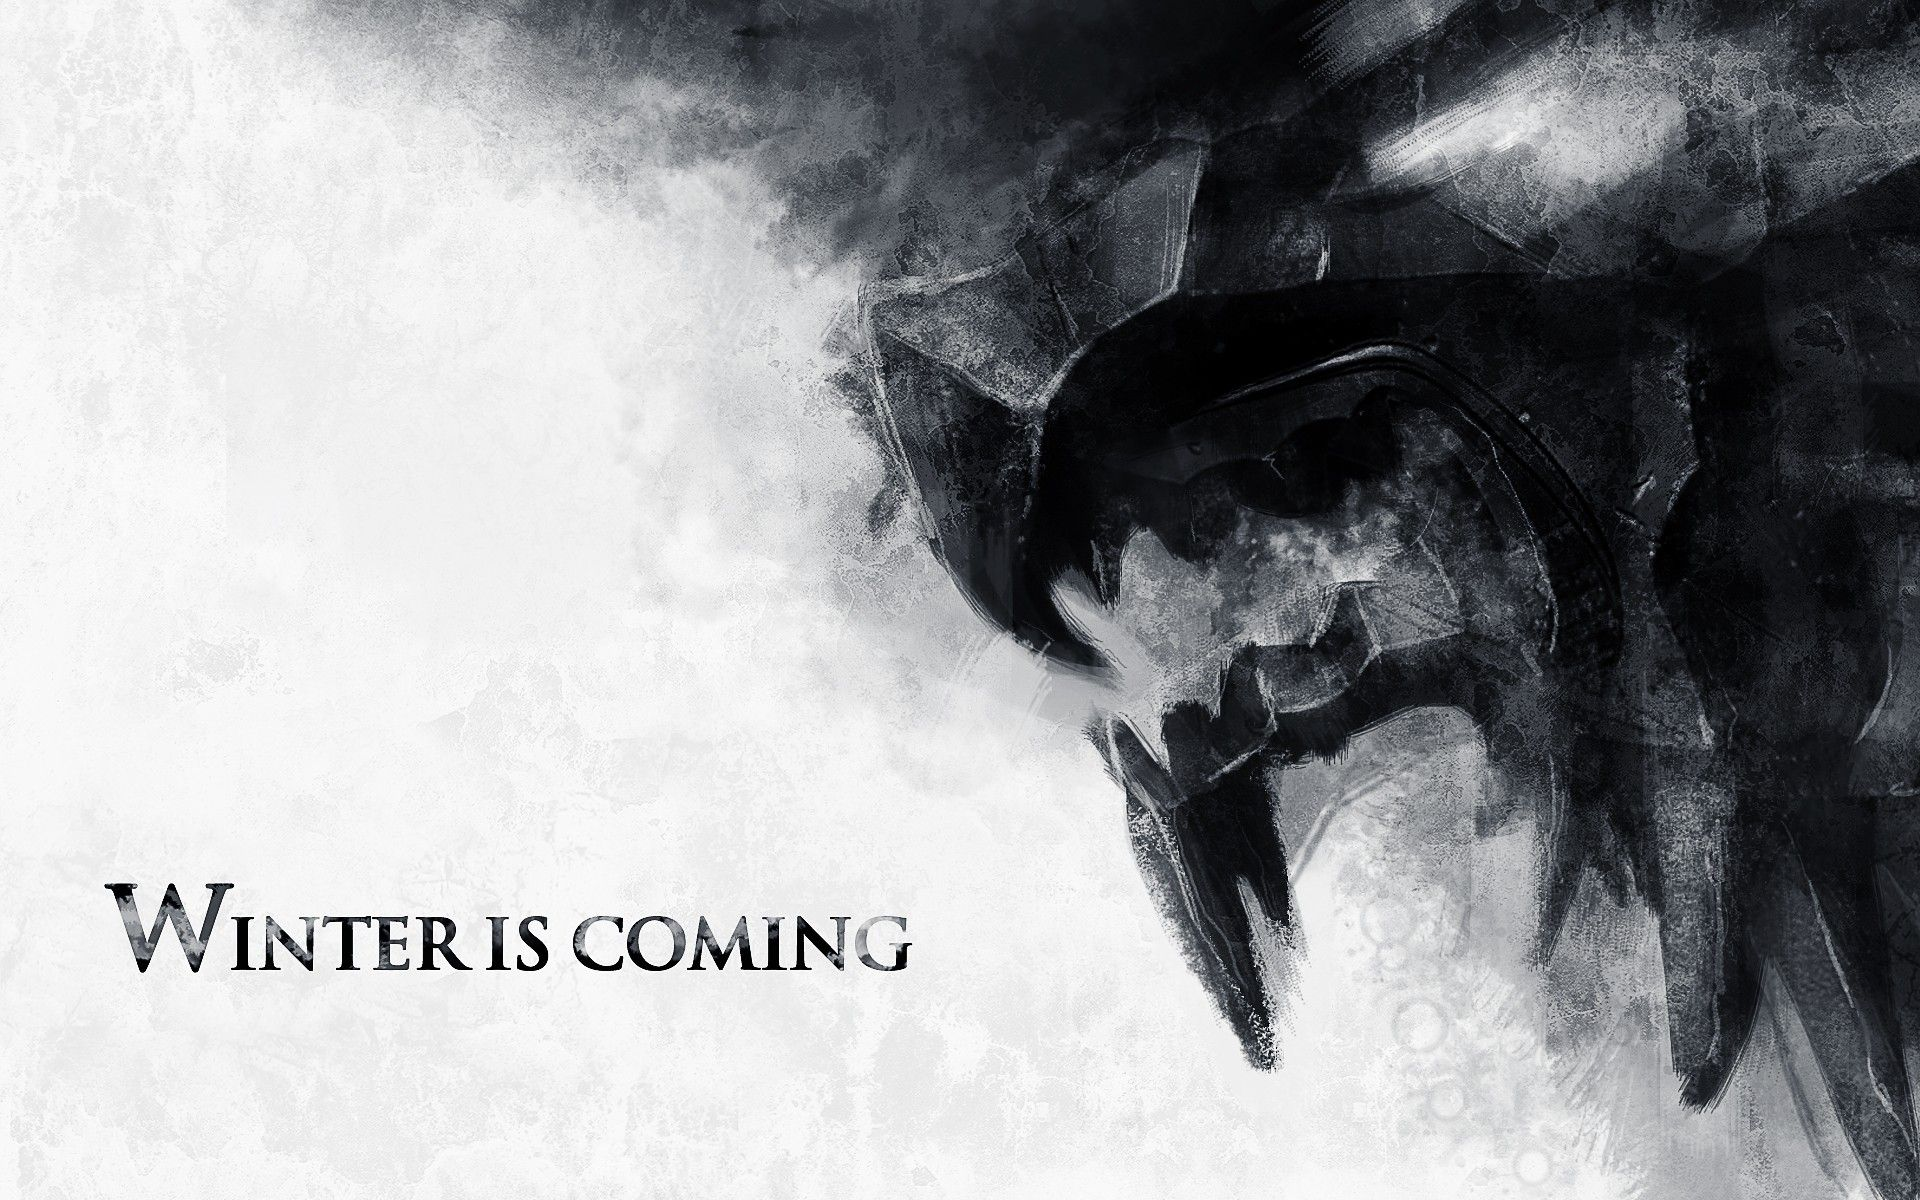 Hd Wallpaper Hd Images Hd Pictures Winter Is Coming Wallpaper Game Of Thrones Theme Winter Is Coming Stark